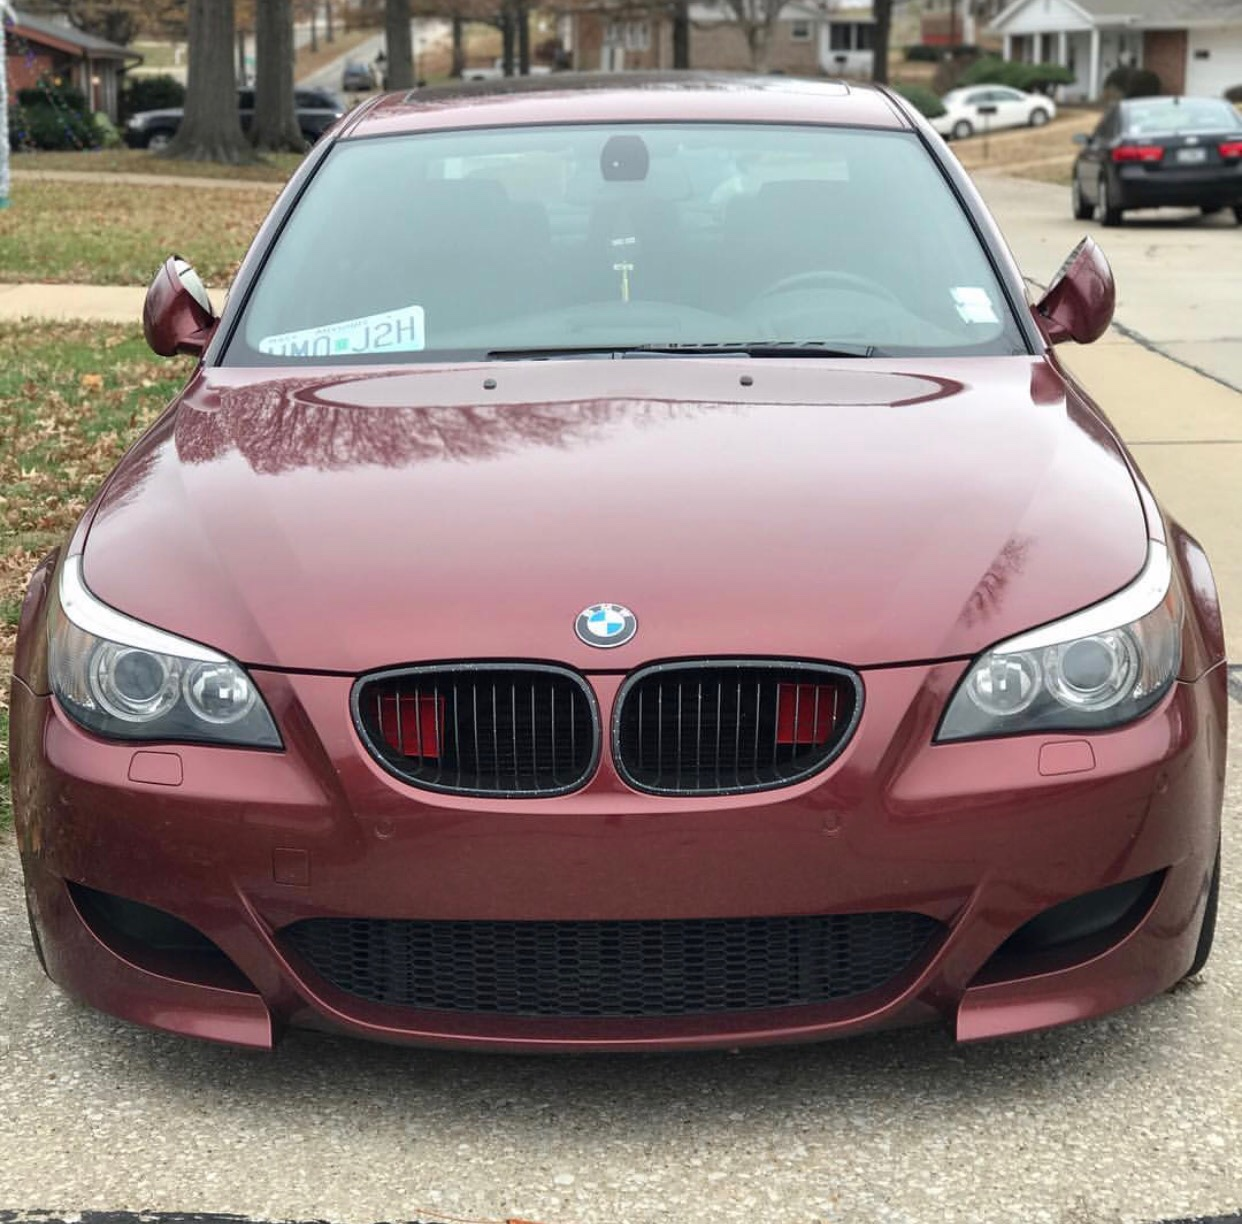 e60 03 10 for sale 2006 bmw m5 indianapolis red bmw m5 forum and m6 forums. Black Bedroom Furniture Sets. Home Design Ideas